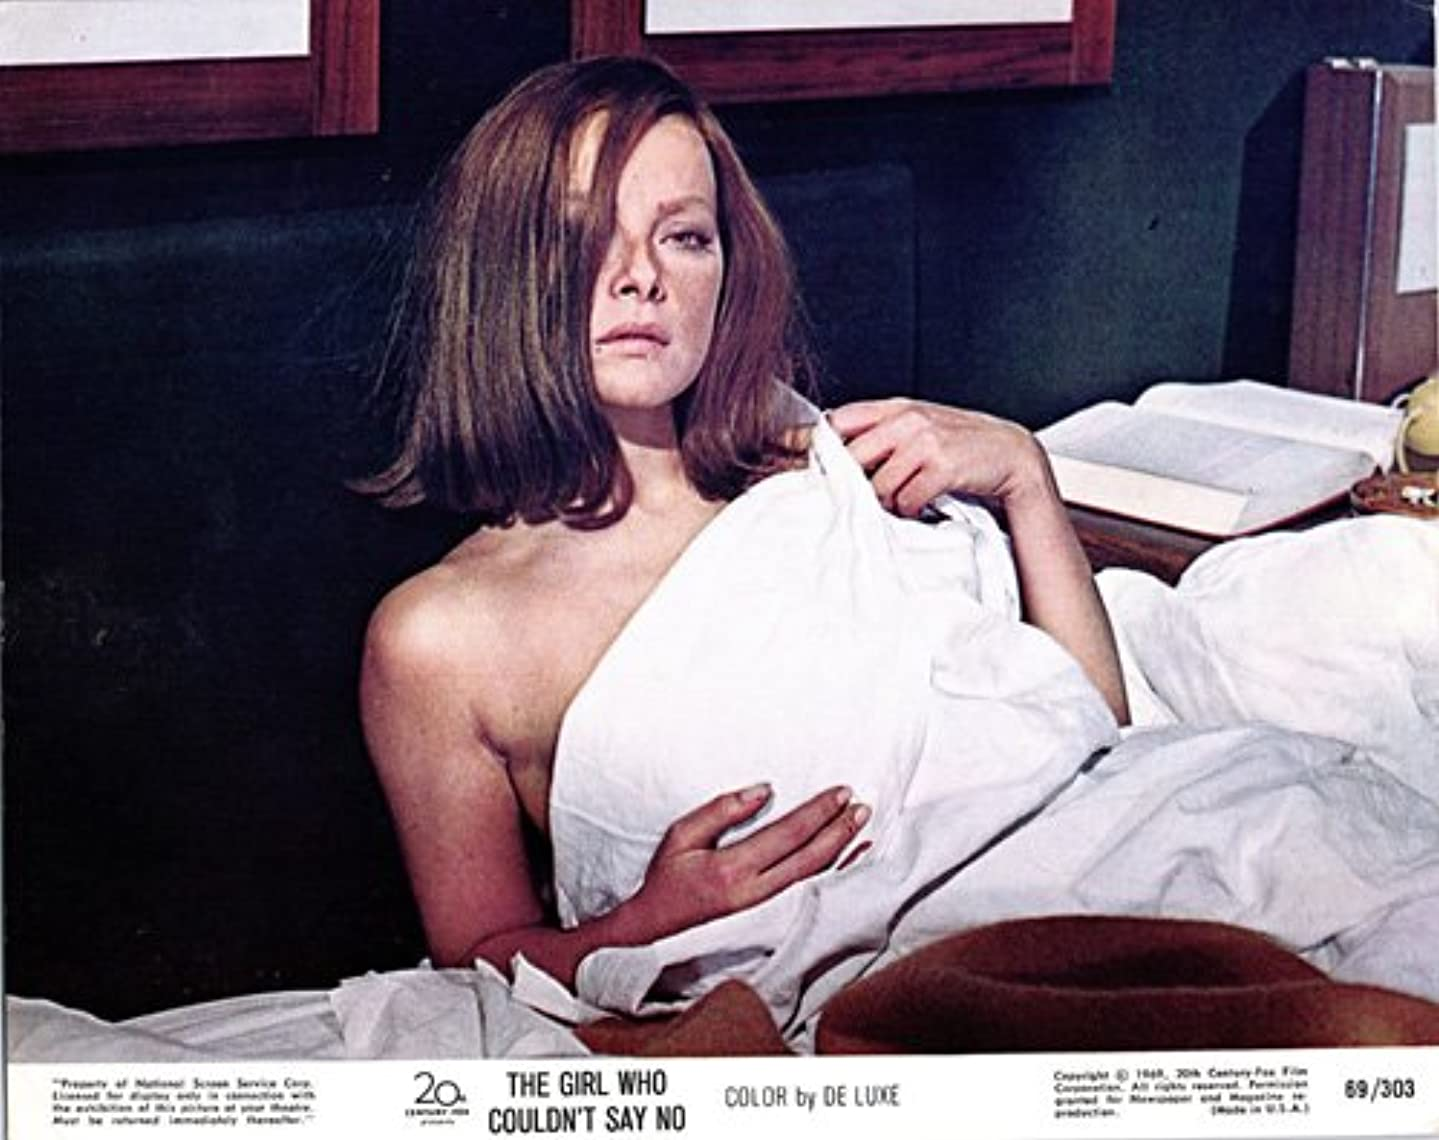 Girl Who Couldn't Say No original lobby card Virna Lisi in bed bare shoulder